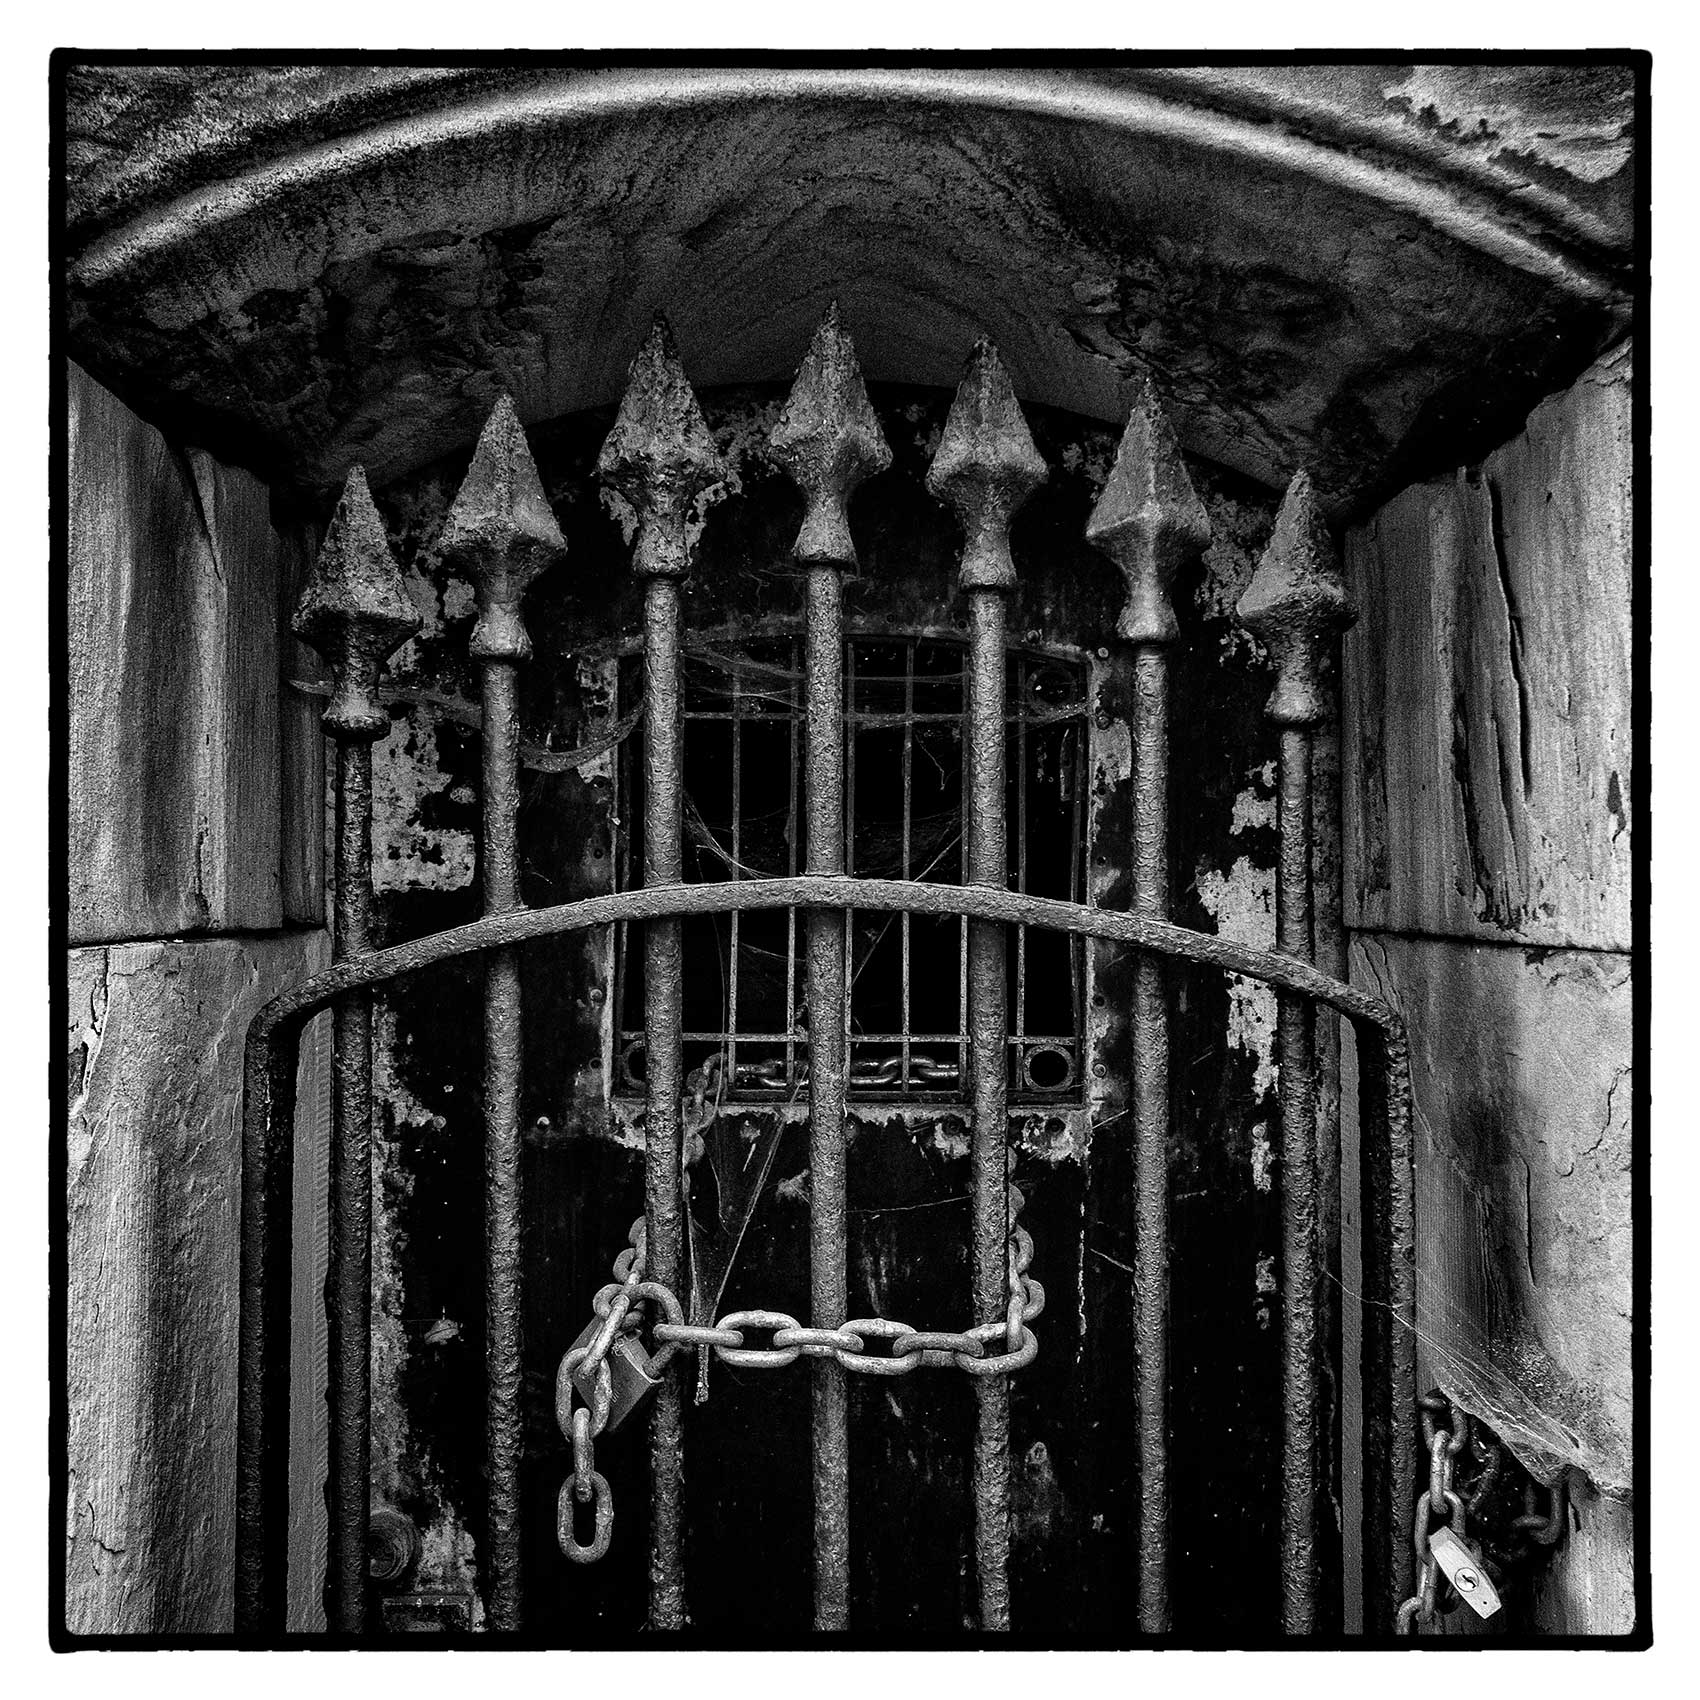 a locked up old iron gate to a crypt at Torontos St. James Cemetery